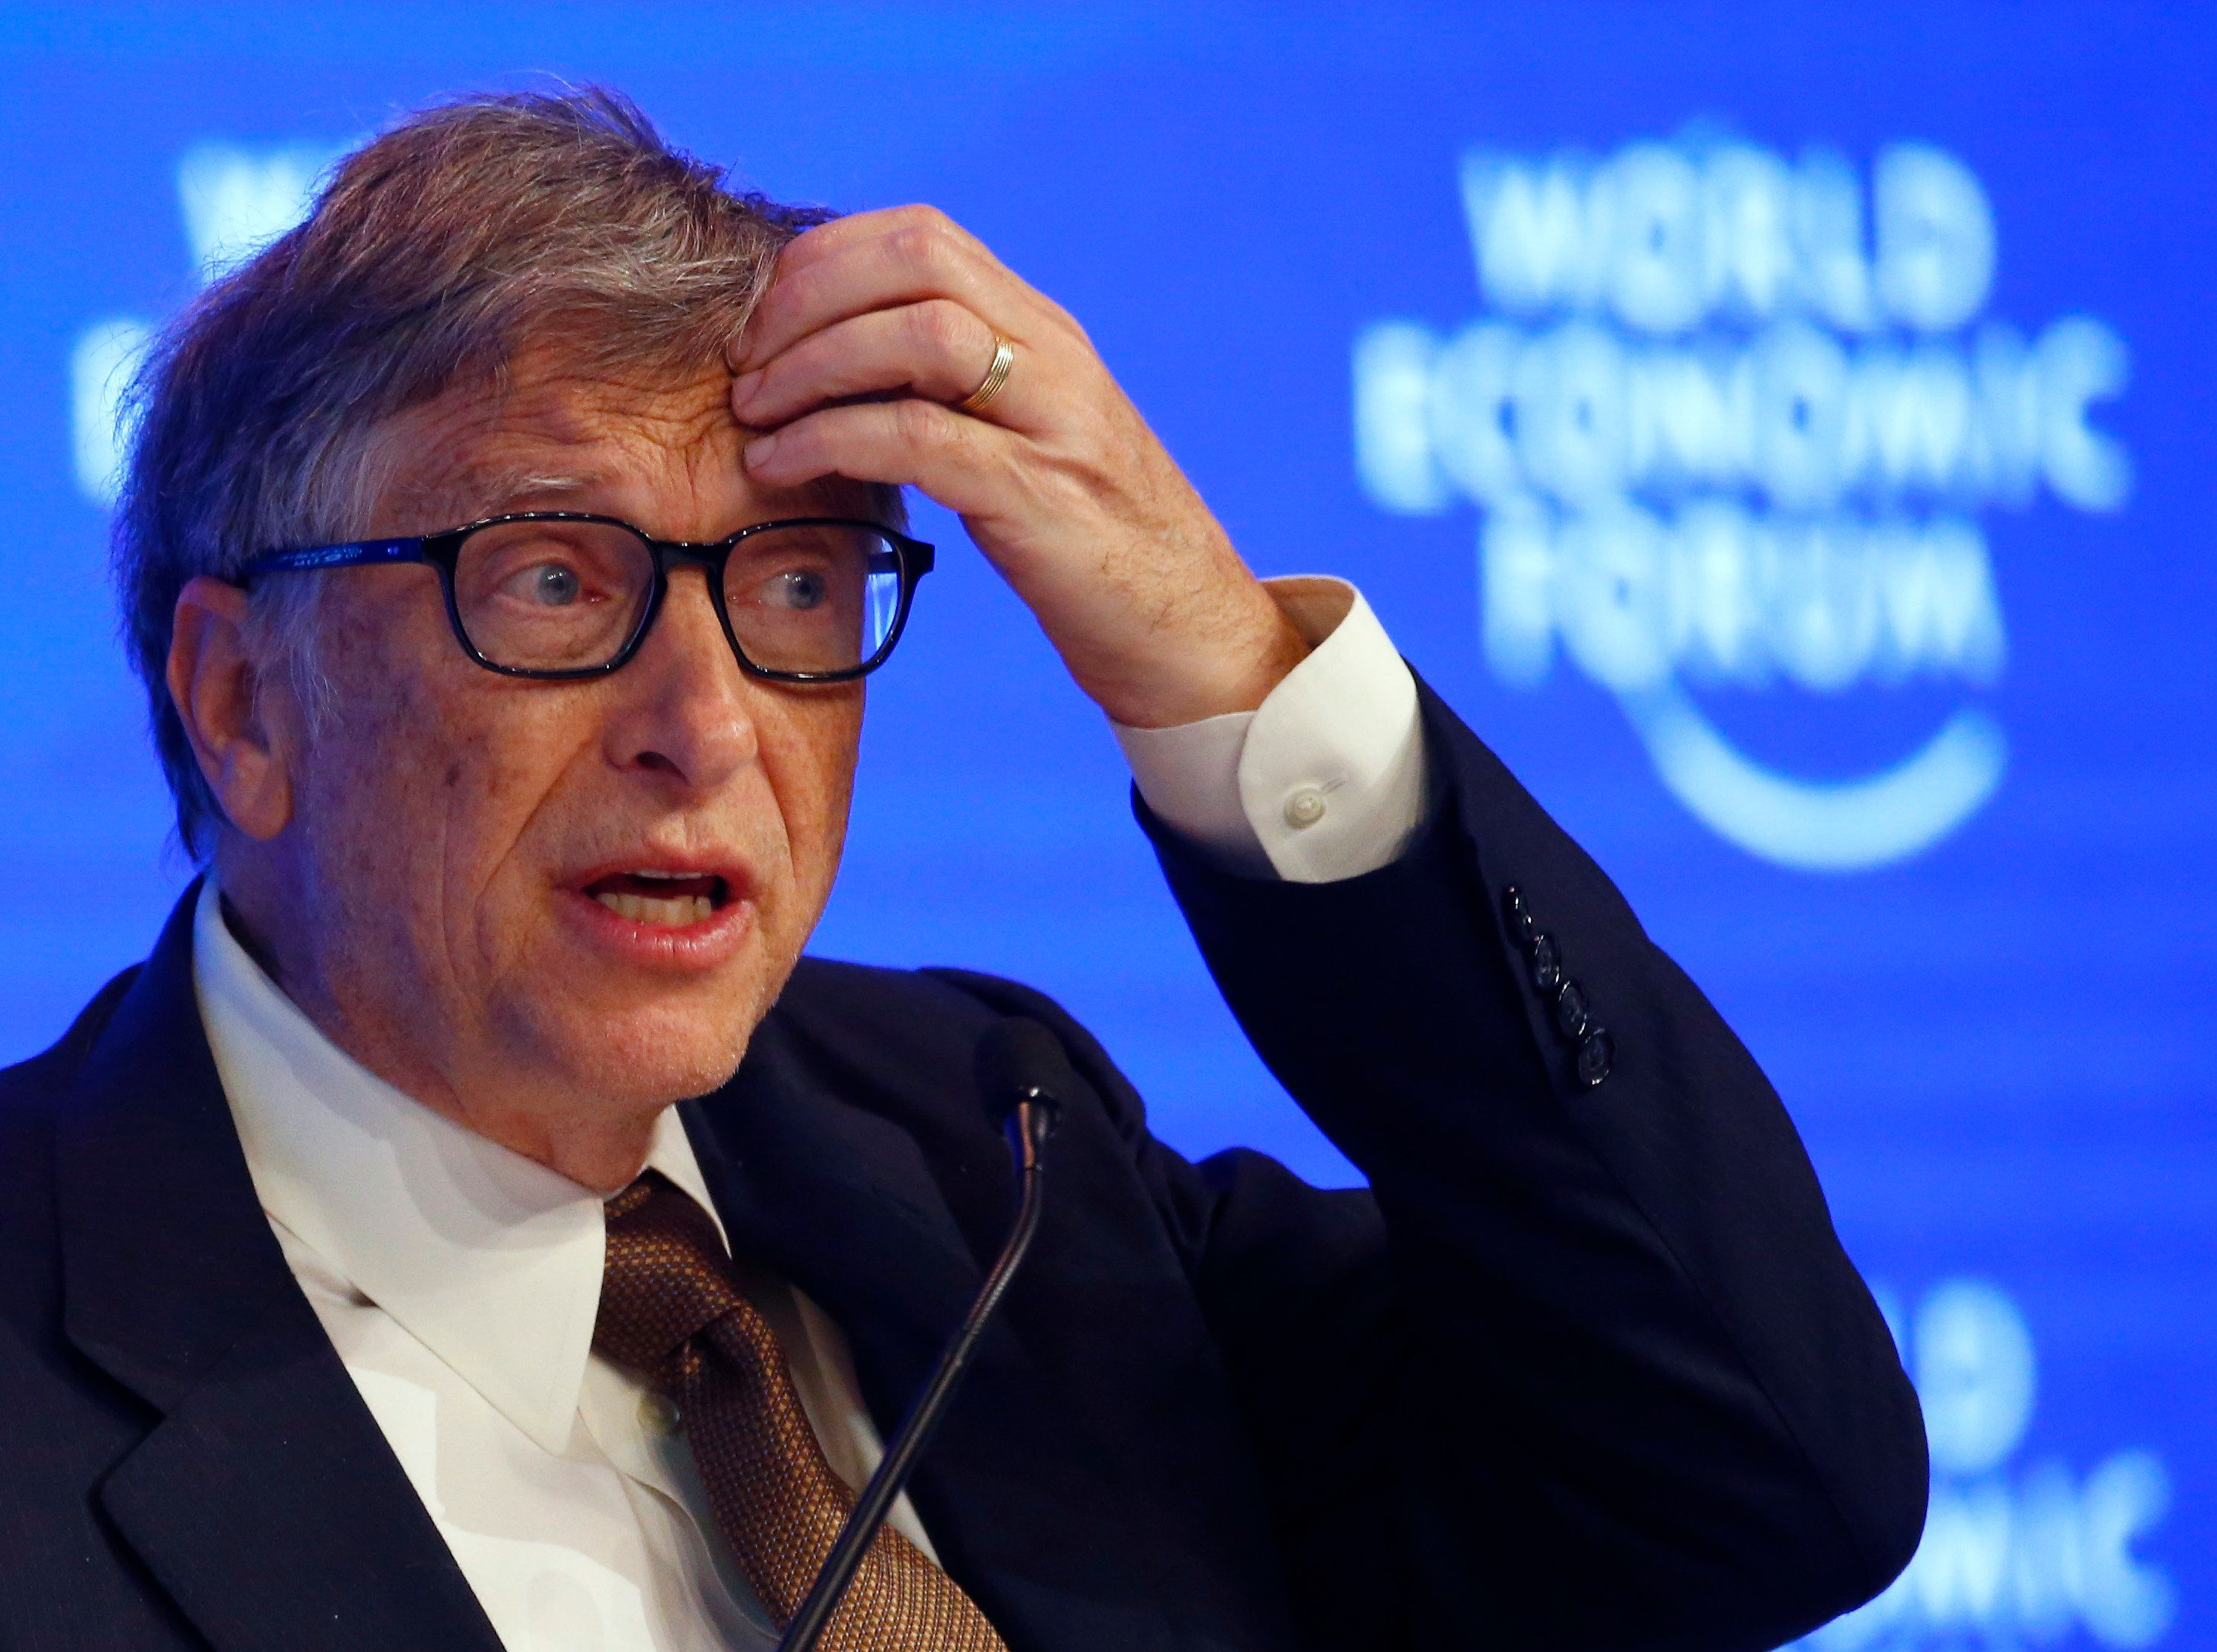 Billionaire philanthropist Bill Gates attends the World Economic Forum (WEF) annual meeting in Davos, Switzerland January 19, 2017.  REUTERS/Ruben Sprich